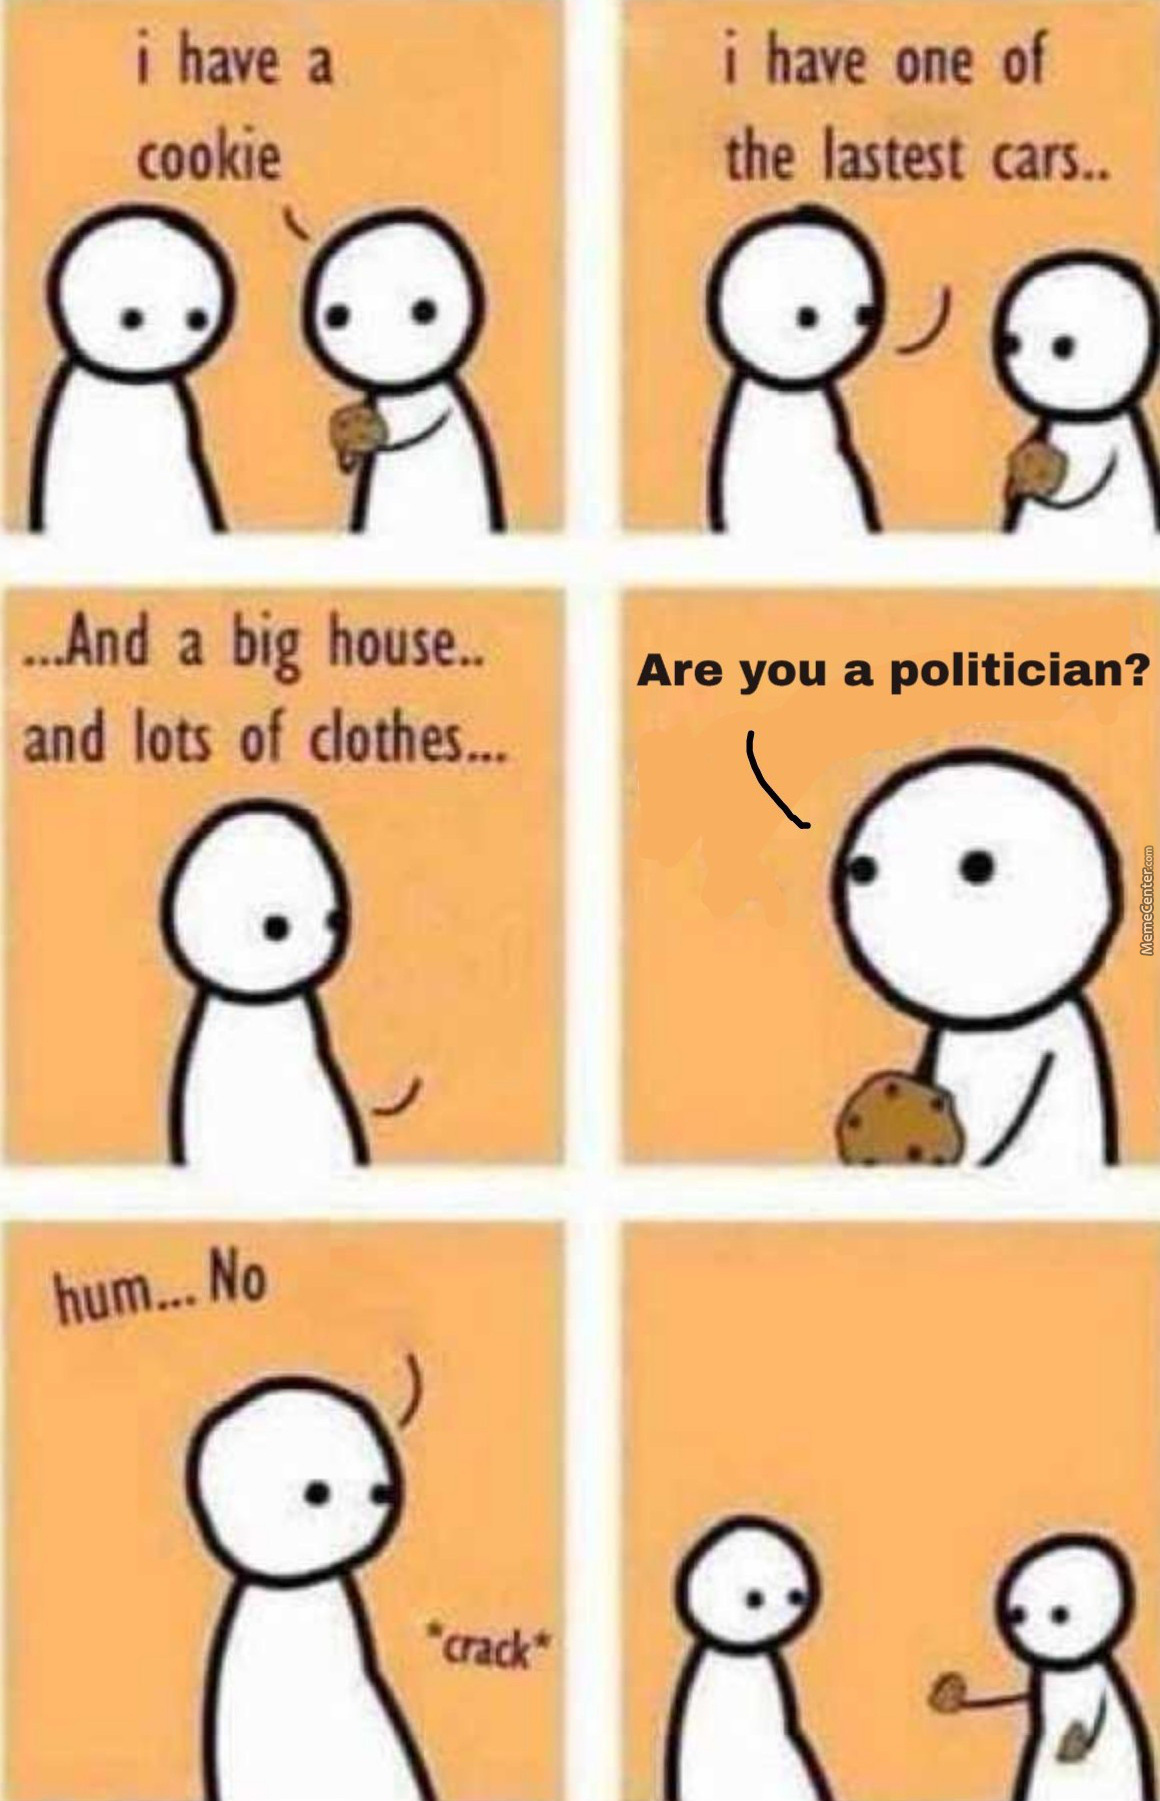 Are You A Politician?